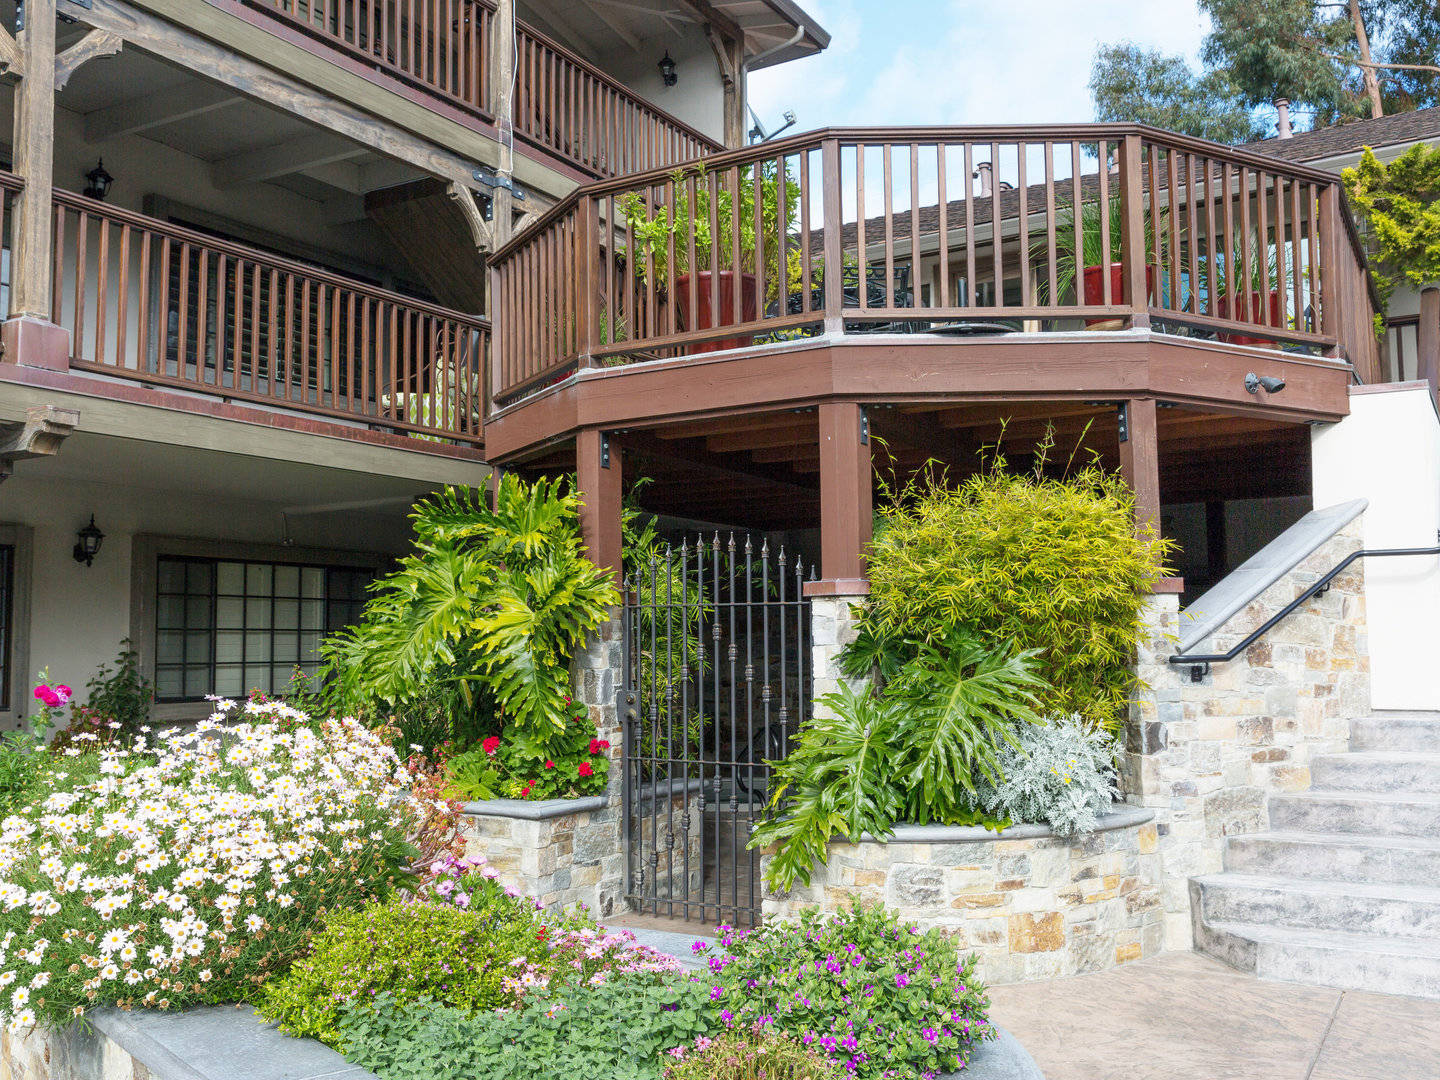 Carmel-by-the-Sea Bed and Breakfast